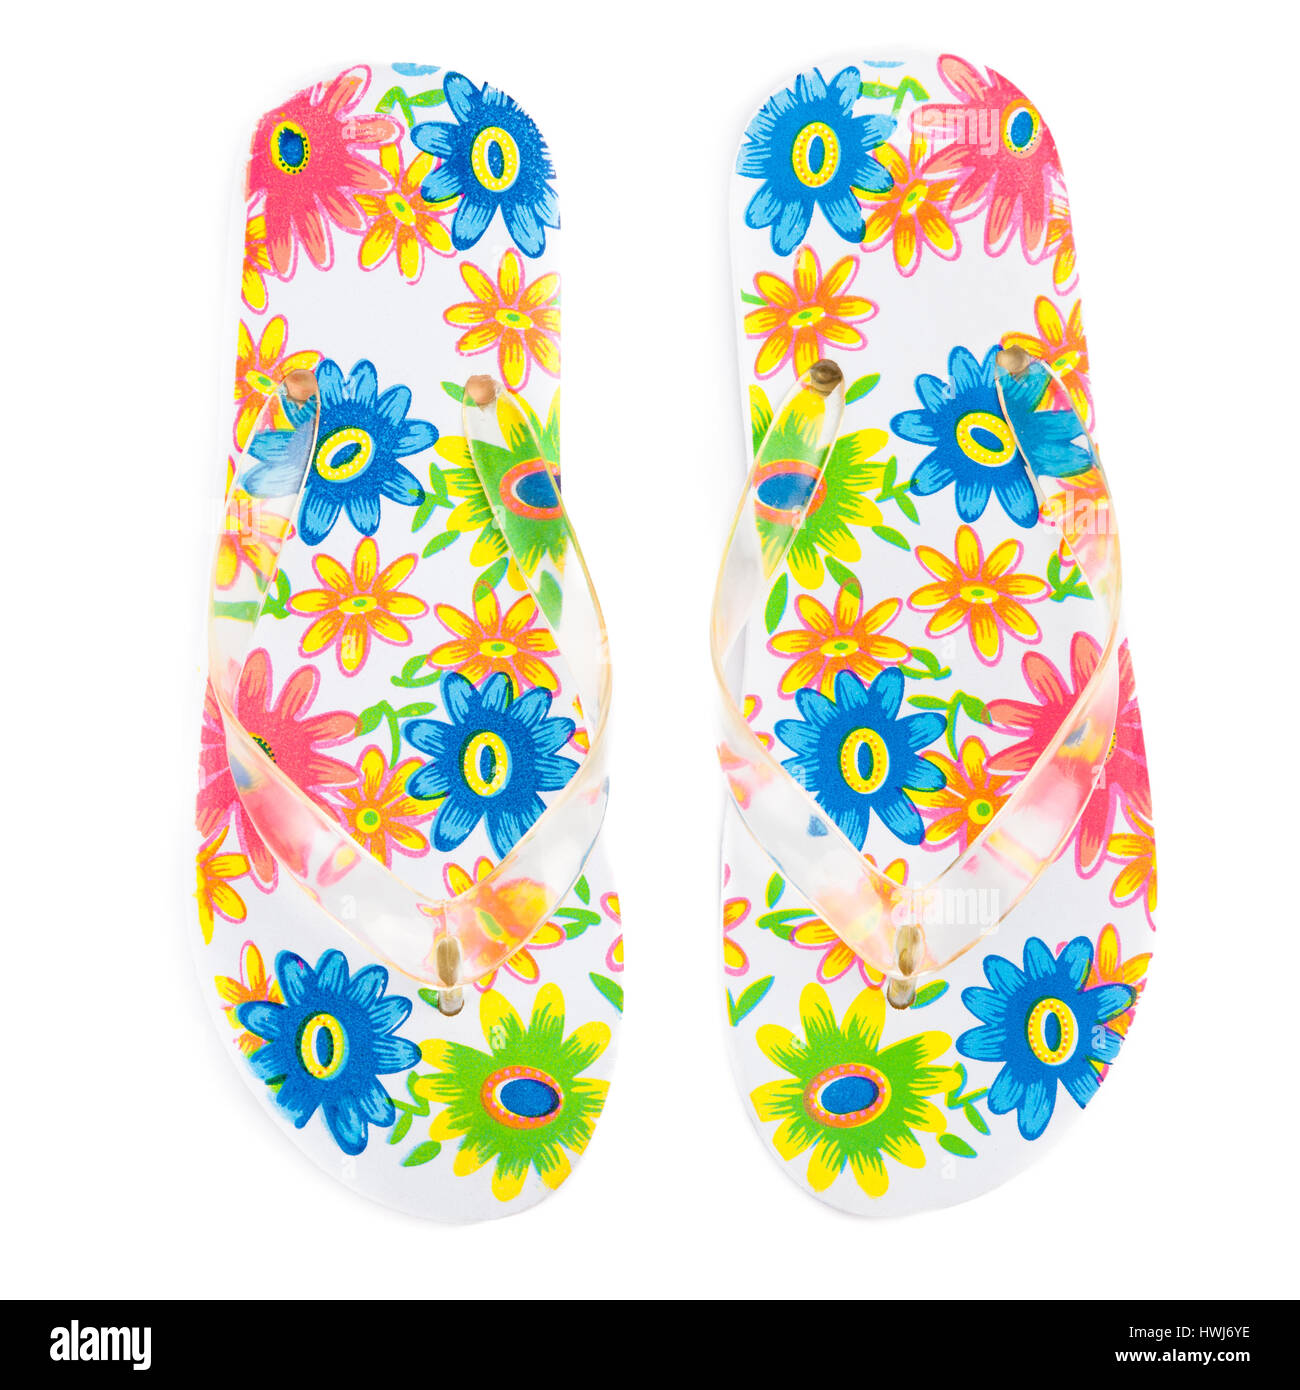 8cccb260362b5 colorful flip-flops with flowers isolated on white background - Stock Image